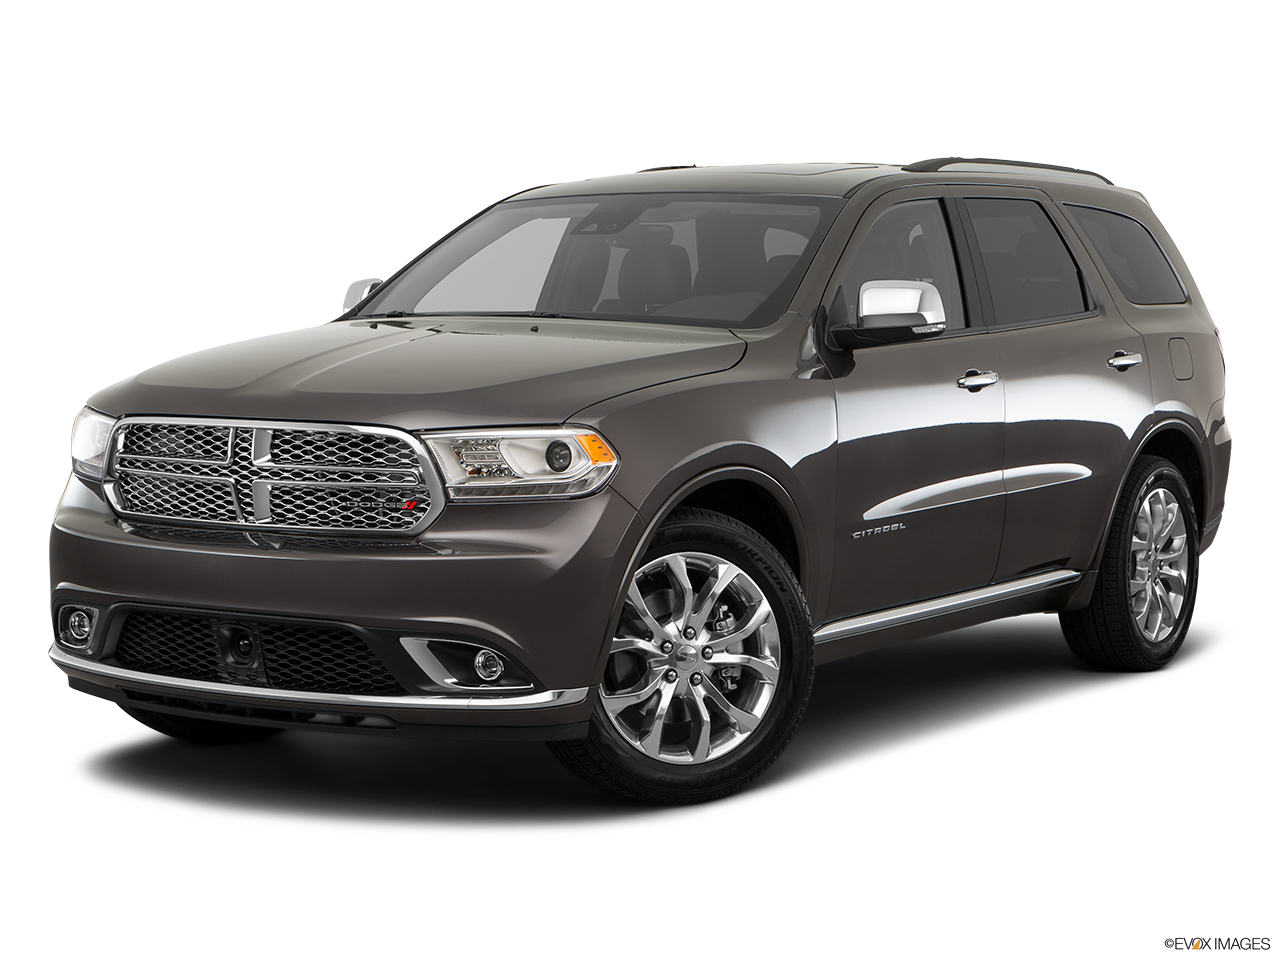 Test Drive A 2017 Dodge Durango at Moss Bros Chrysler Dodge Jeep Ram Moreno Valley in Moreno Valley